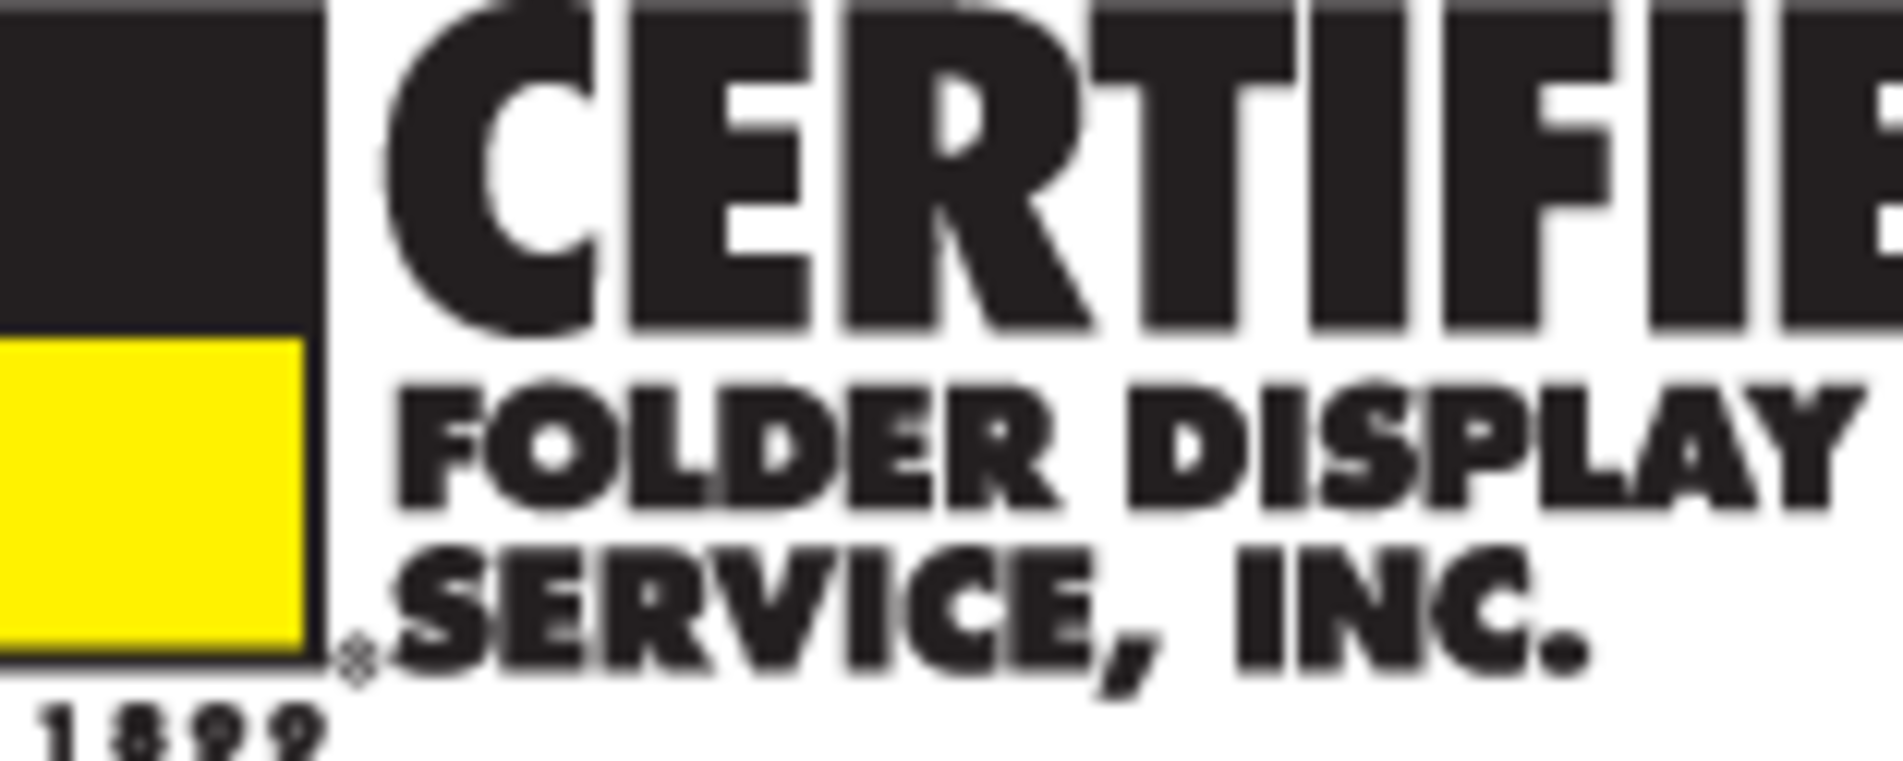 Logo - Certified Folder Display Services, Inc.